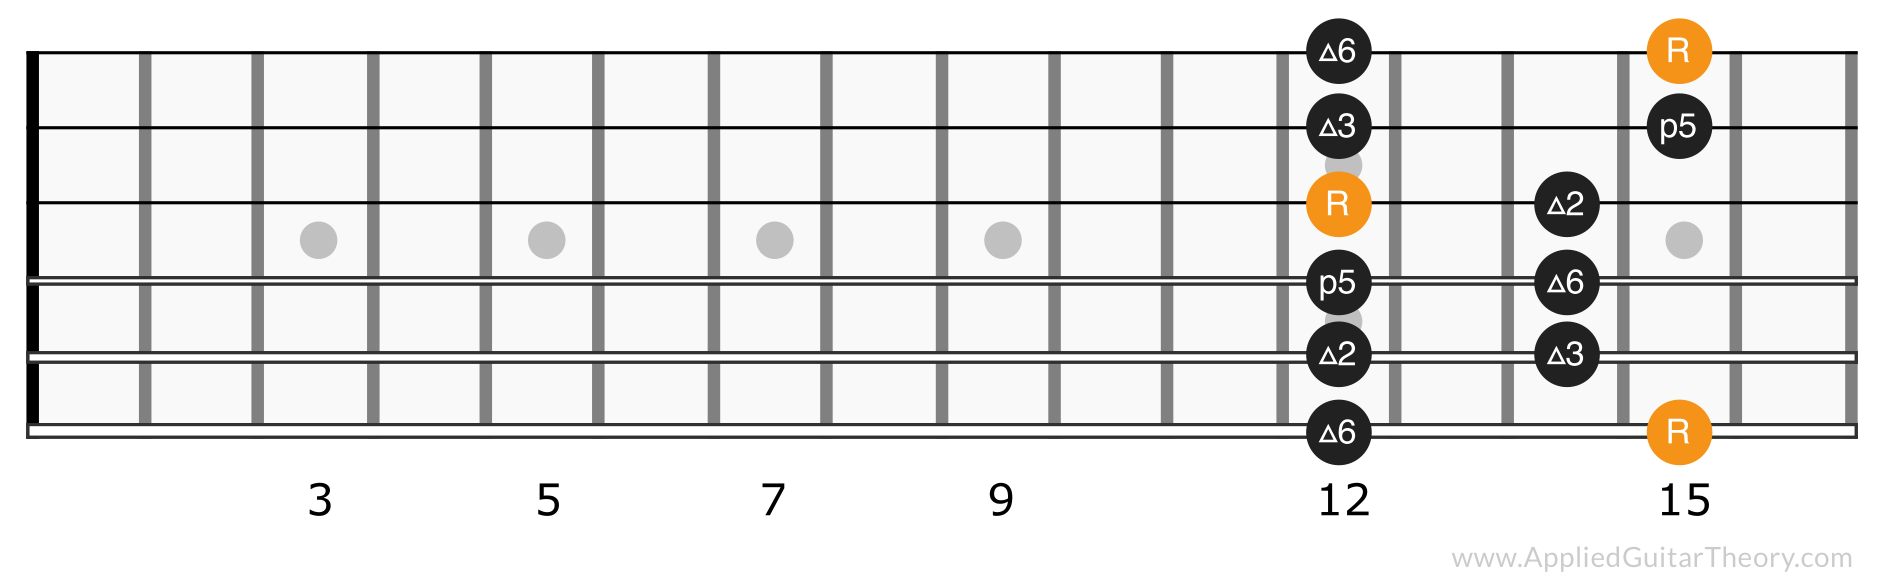 Major pentatonic scale position 5